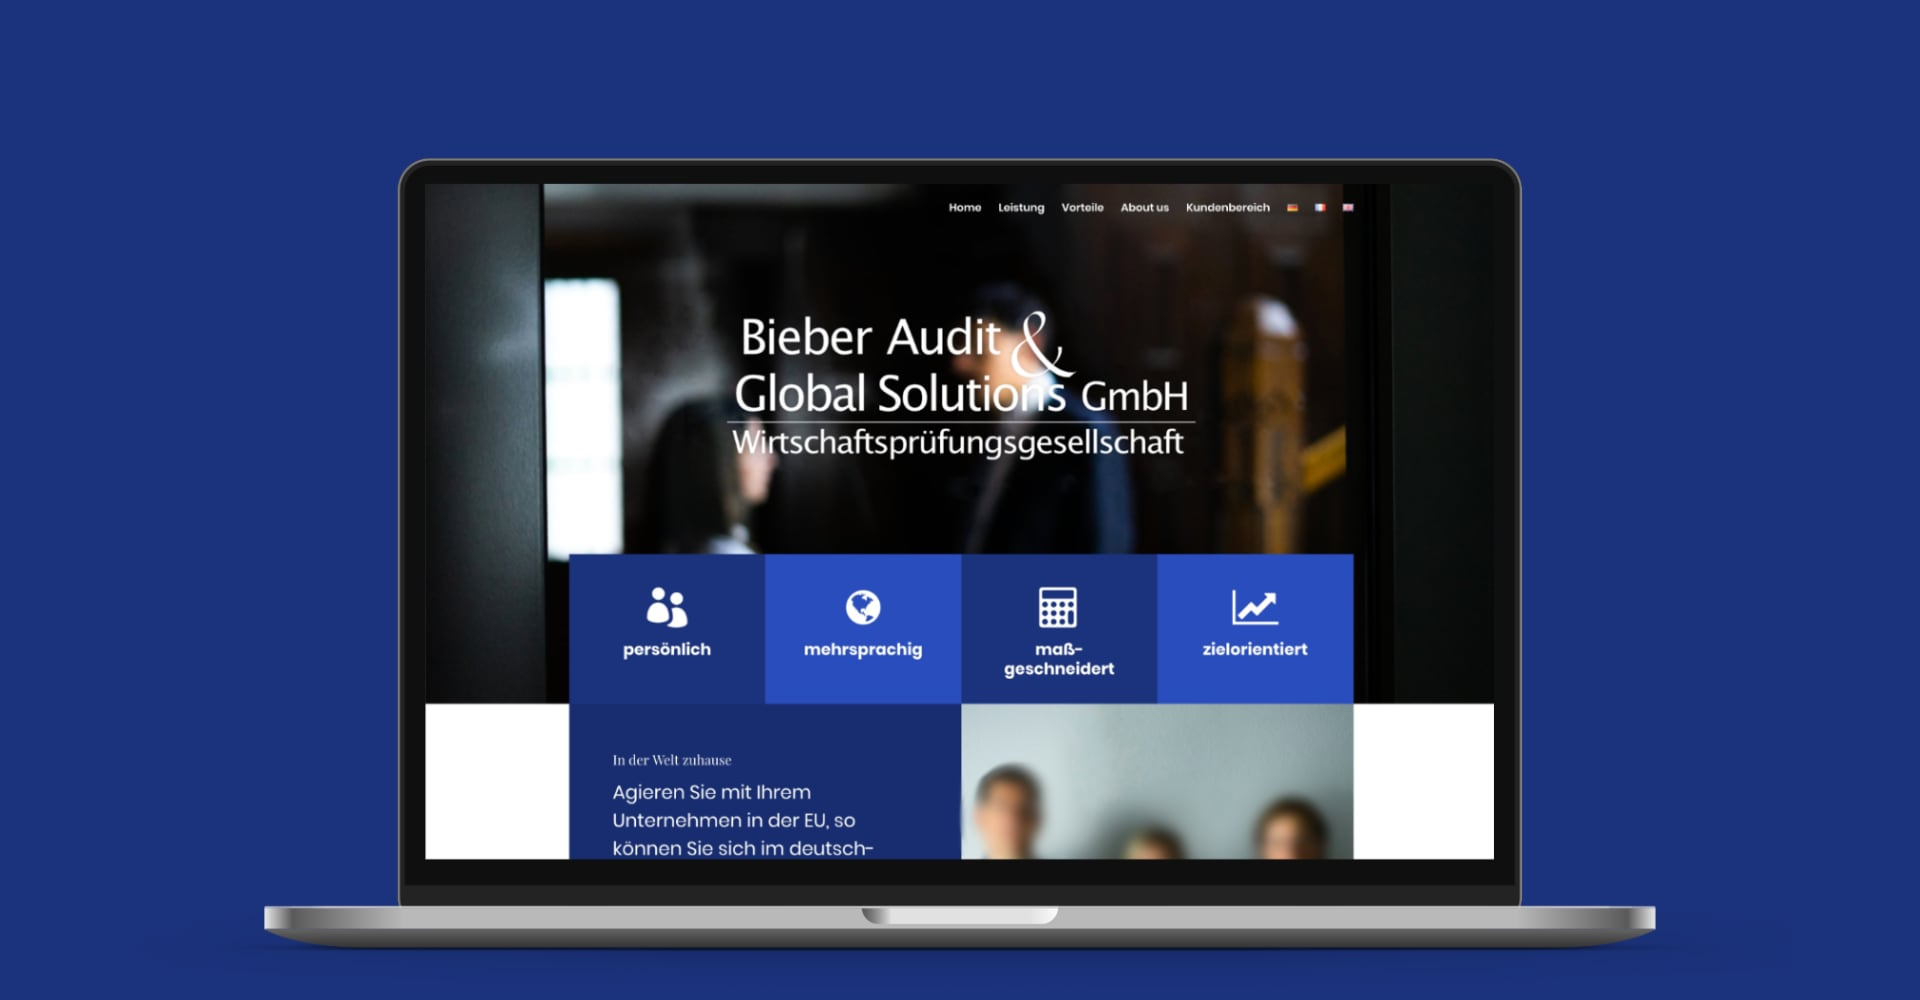 Bieber Audit & Global Solutions GmbH